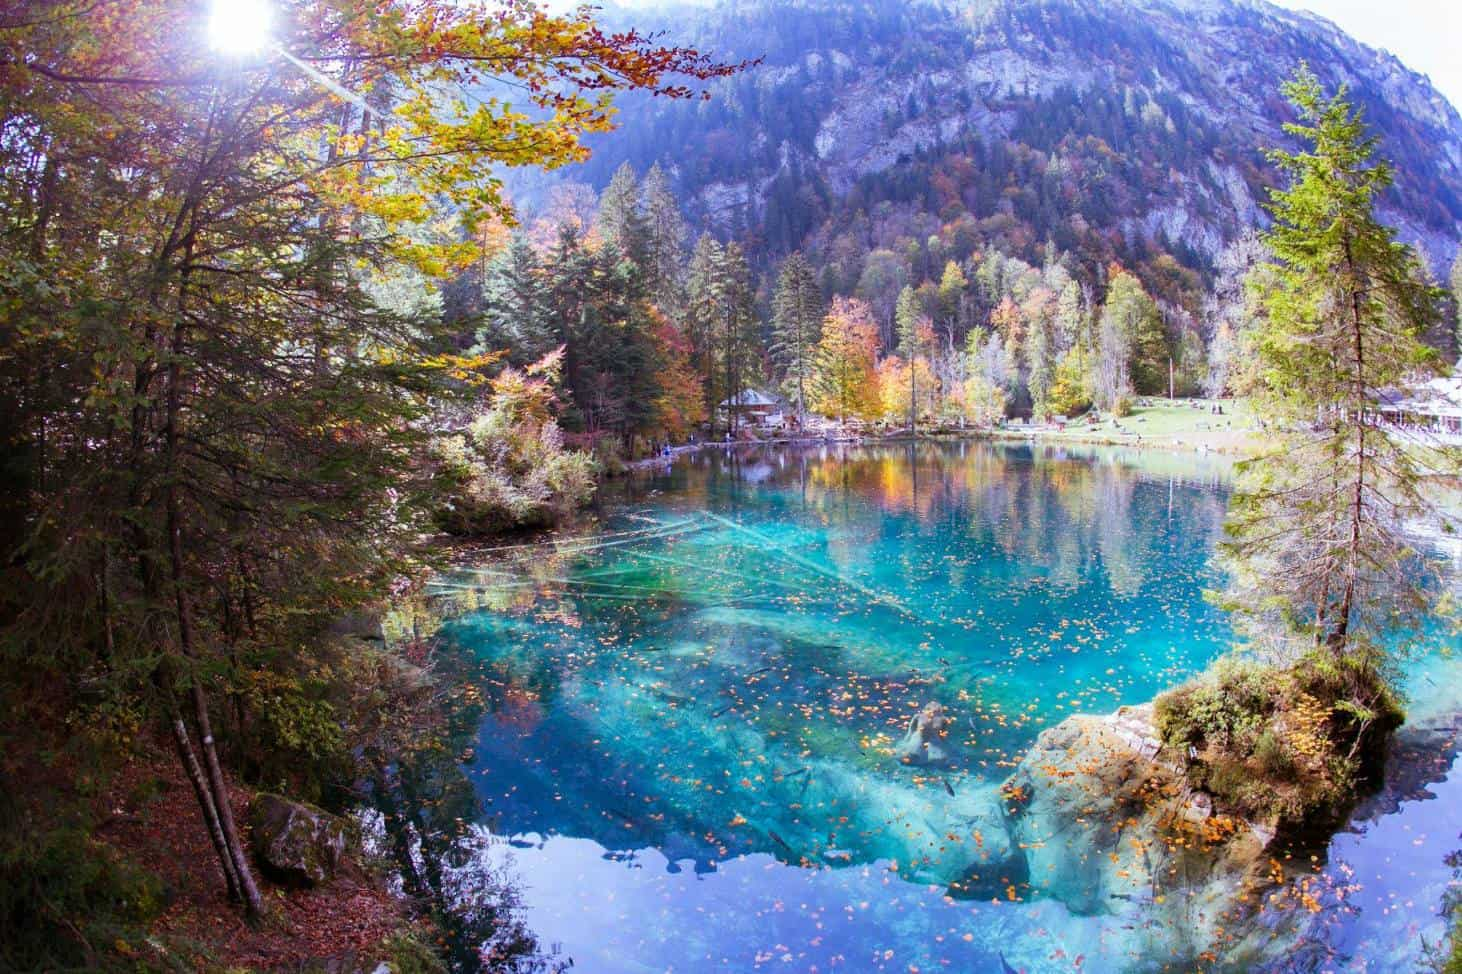 Blausee In Its Autumn Glory - A Must See Fall Excursion